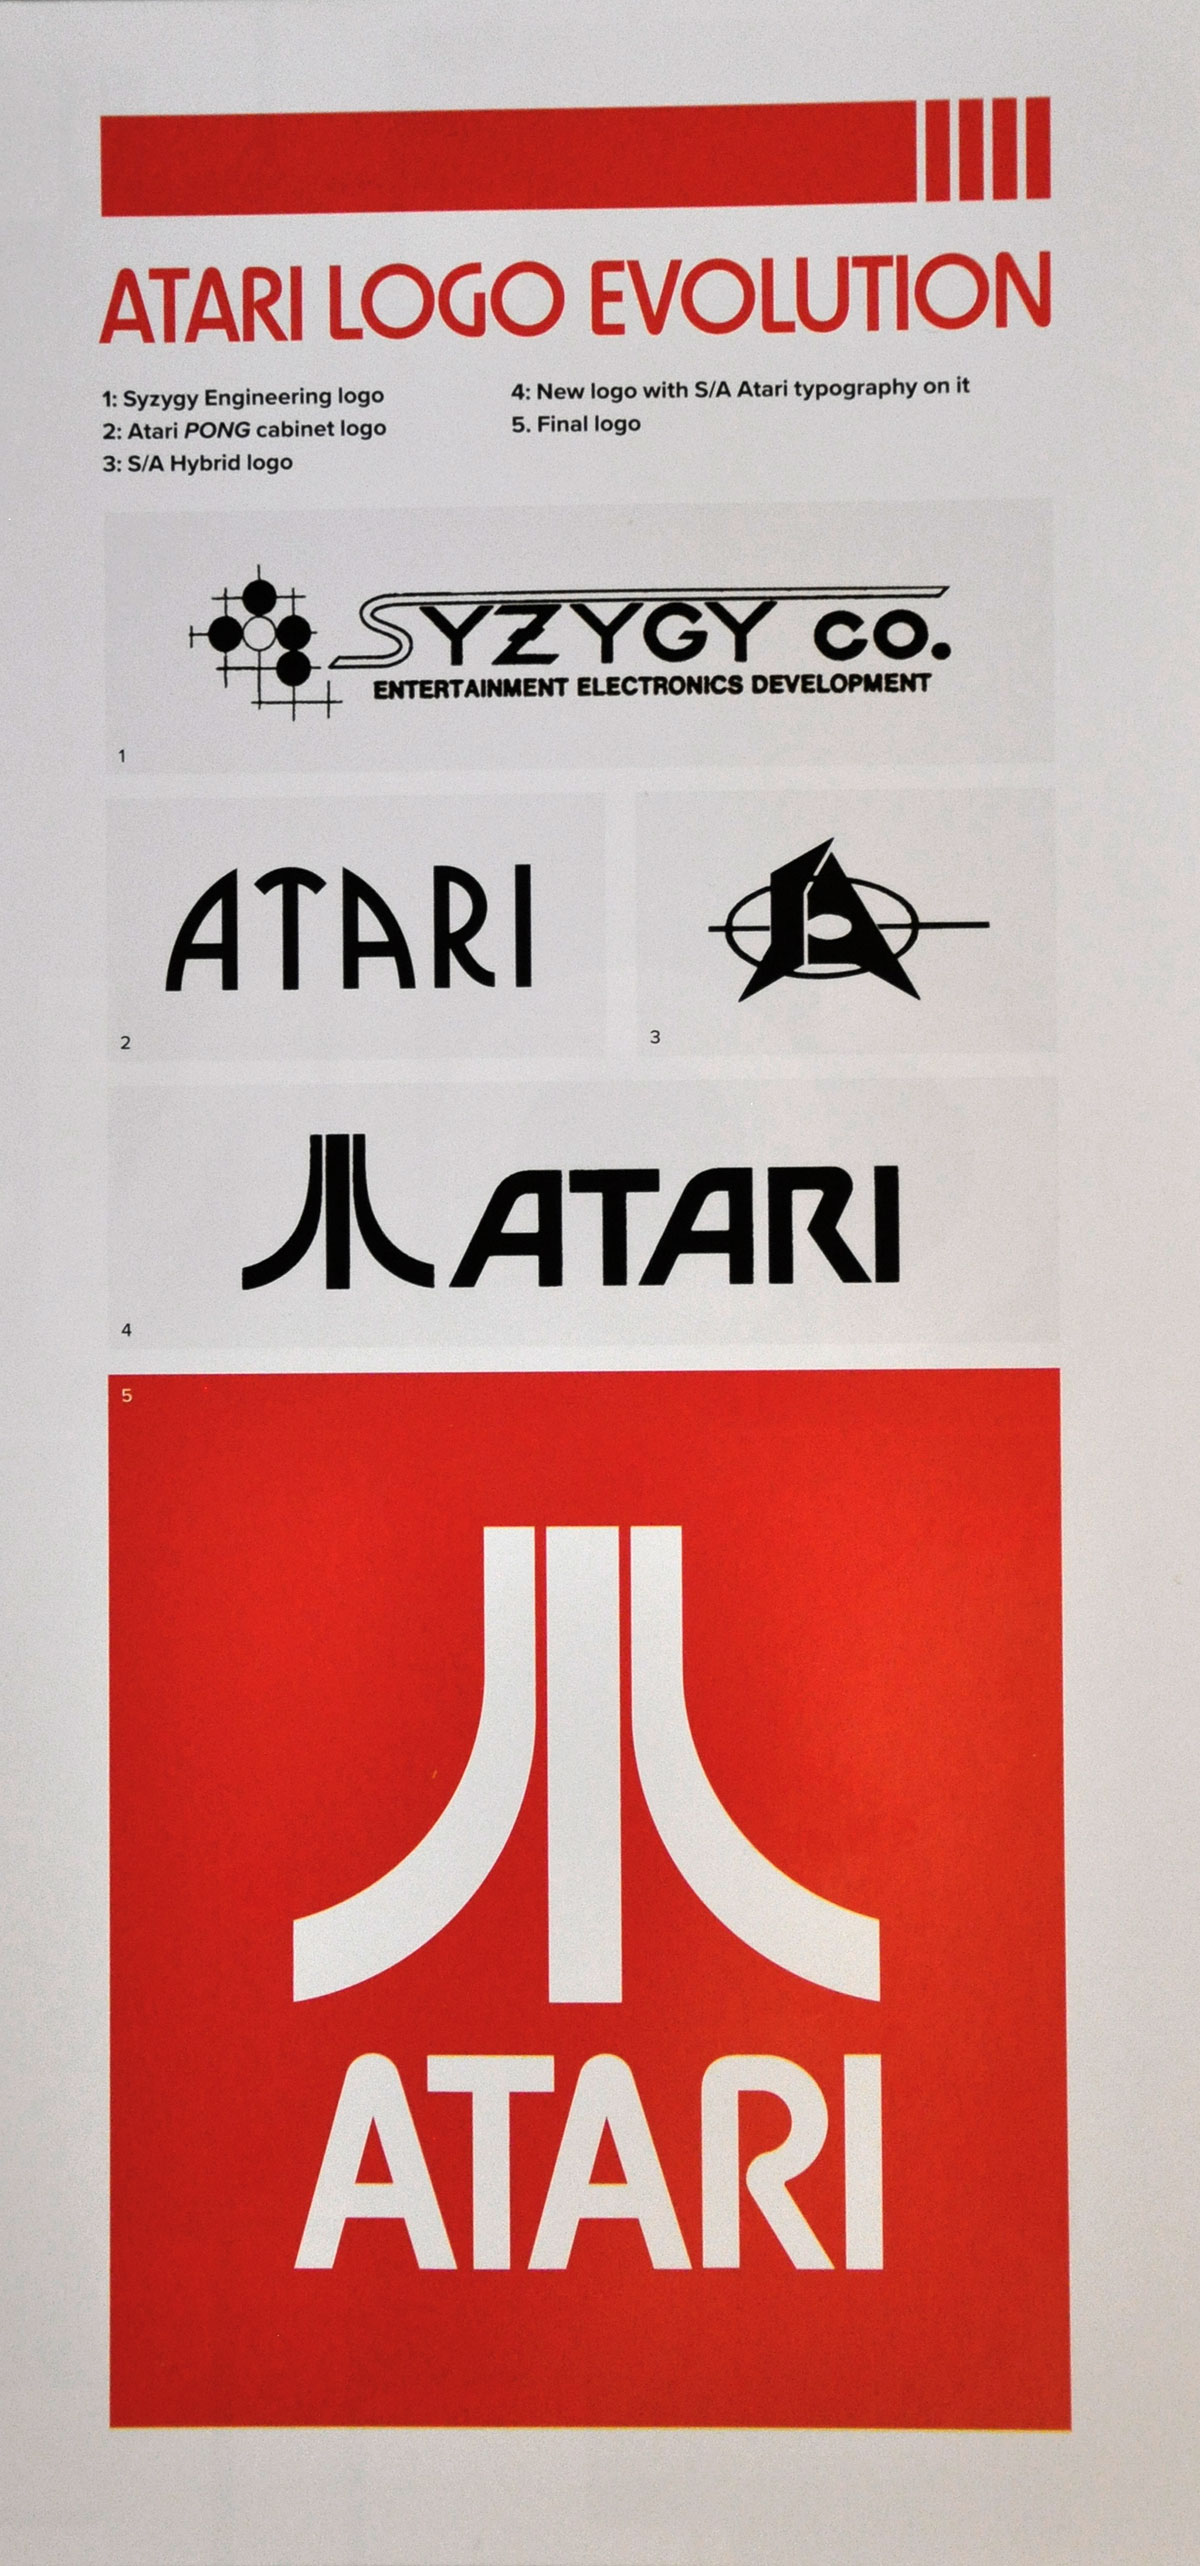 Atari logo evolution